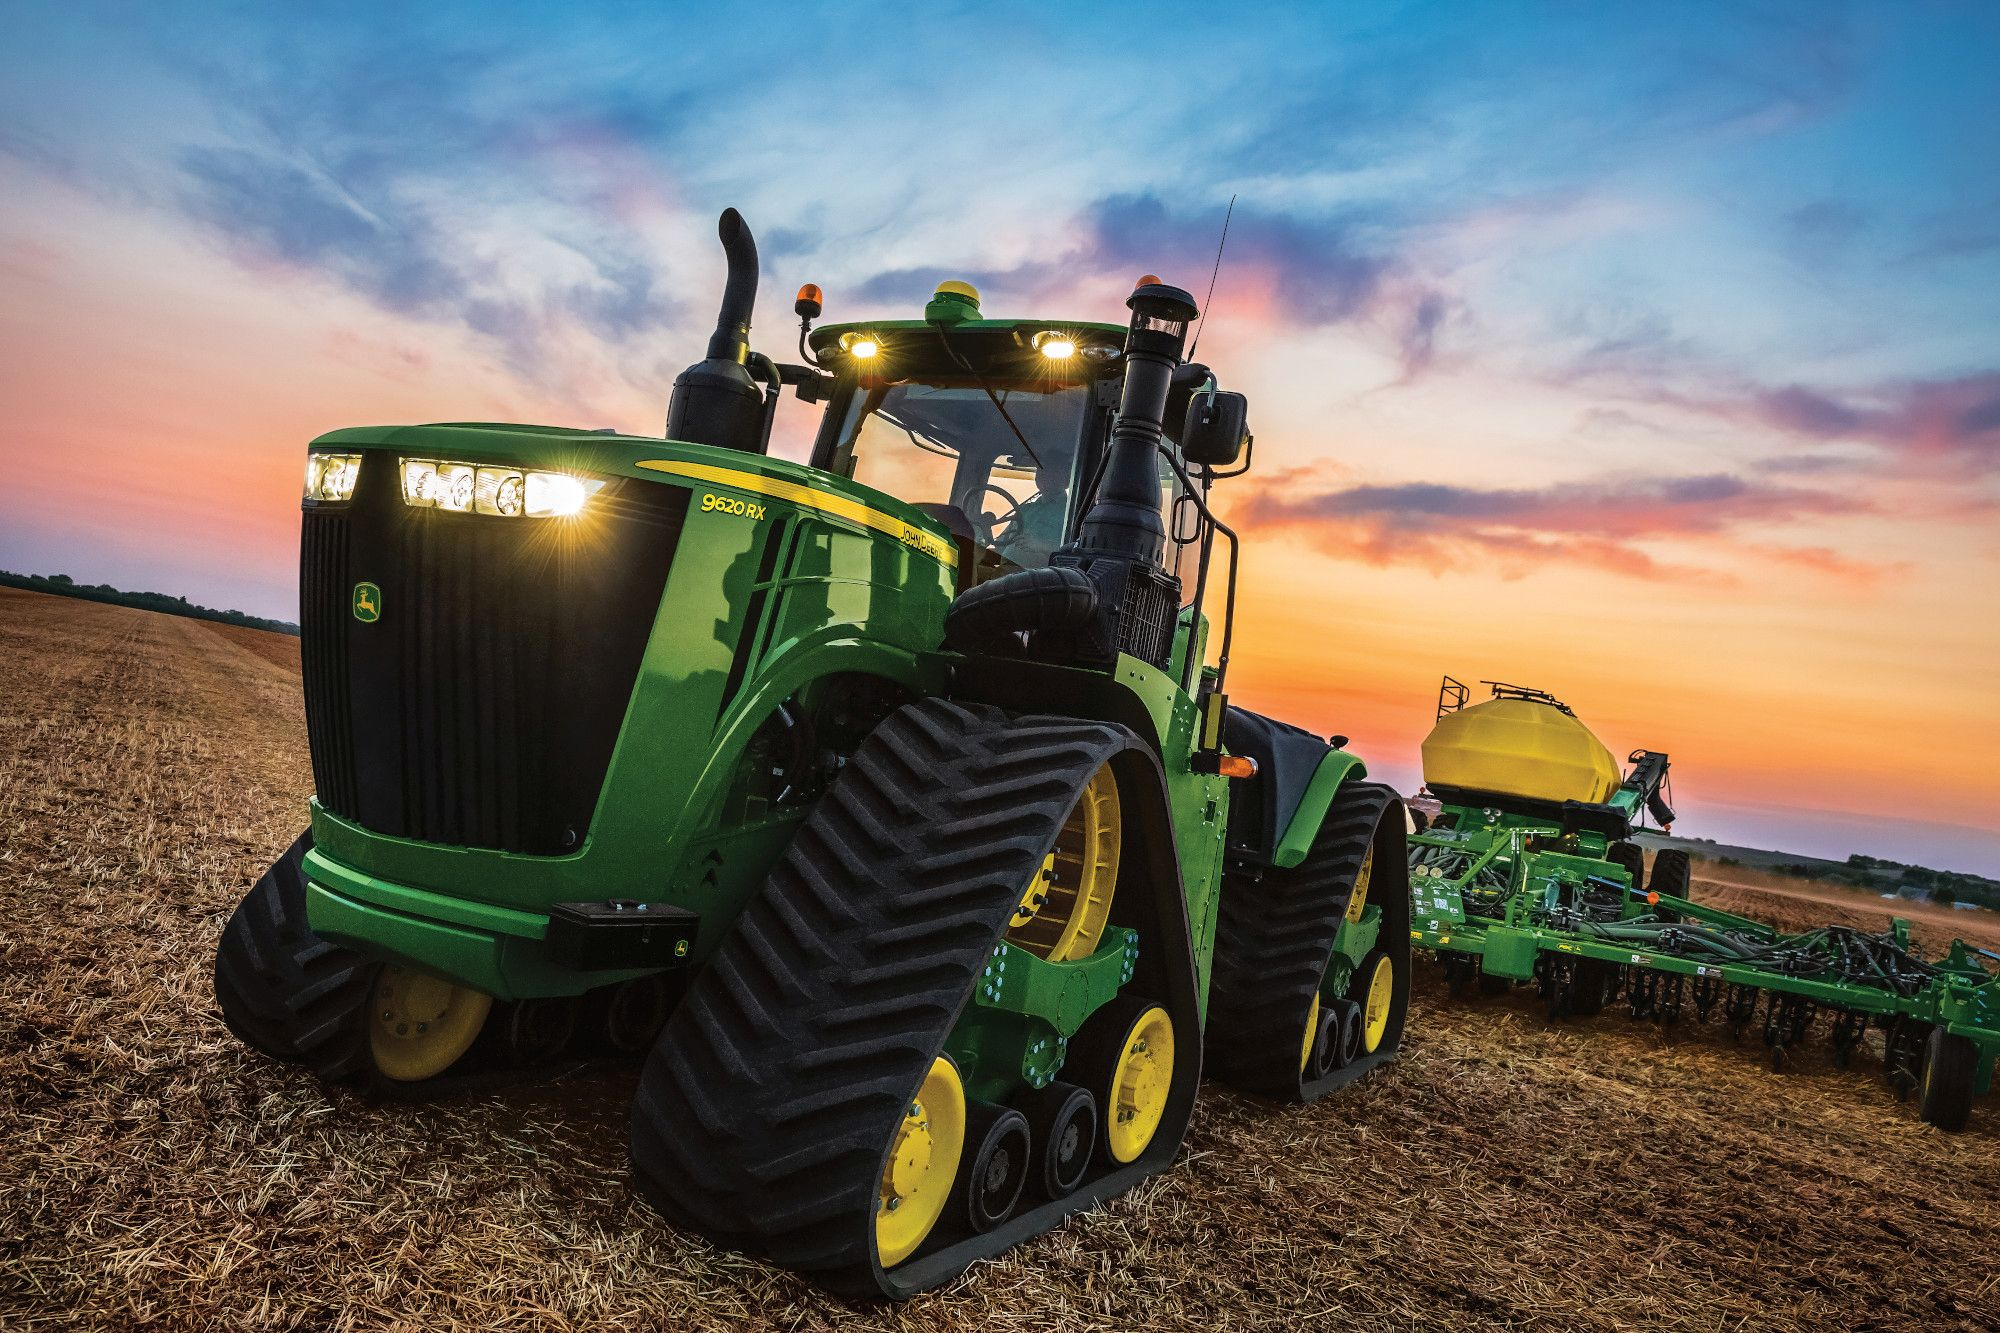 Front exterior view of the John Deere 9620 RX